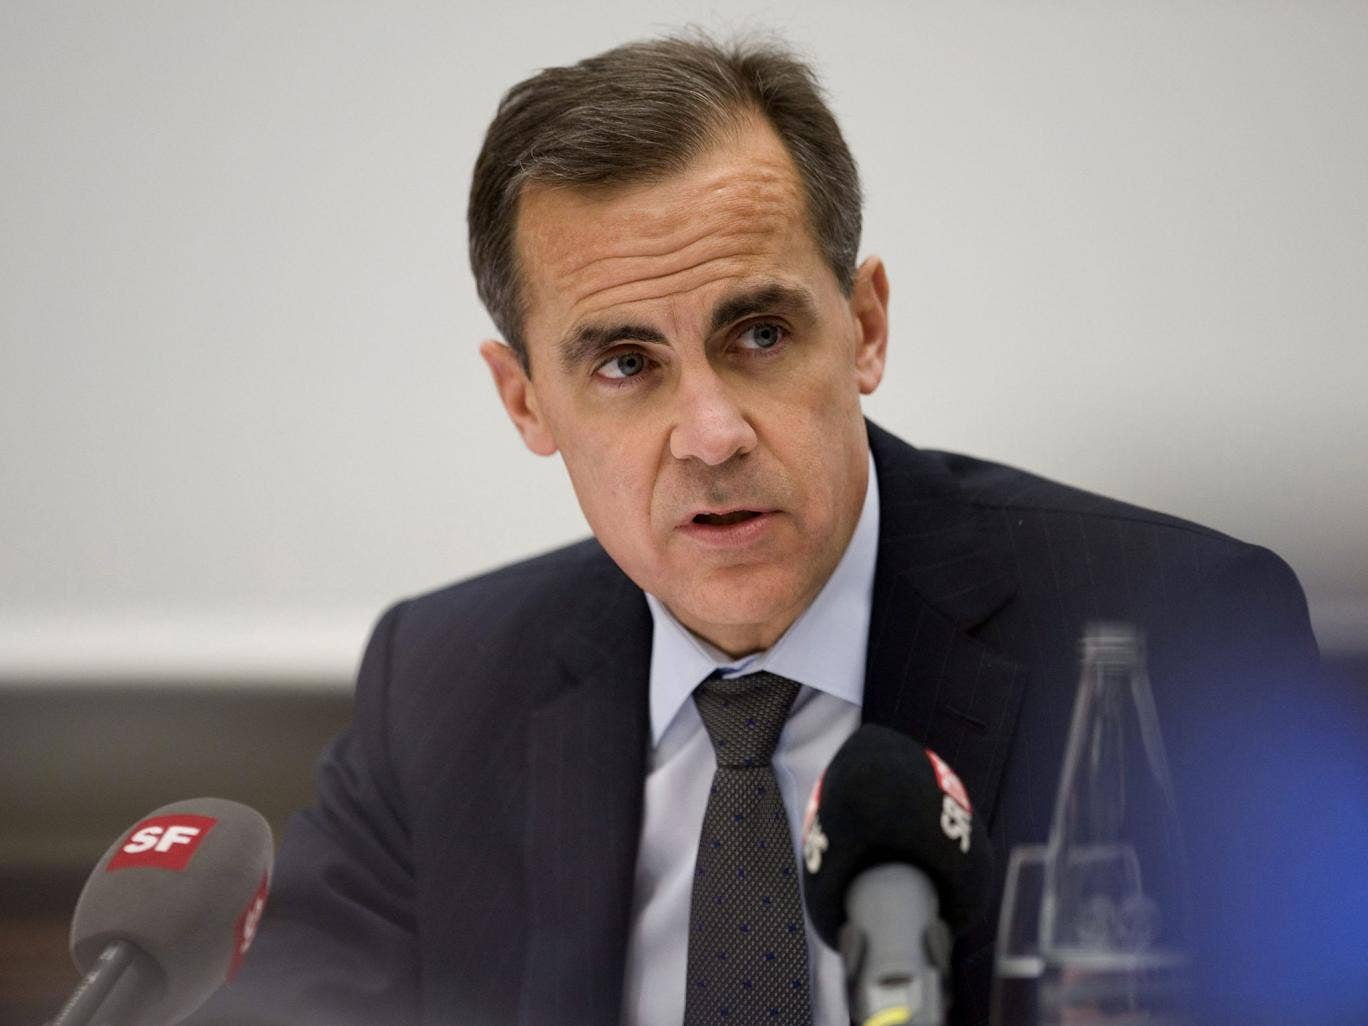 Mark Carney has been named as the new Bank of England Governor